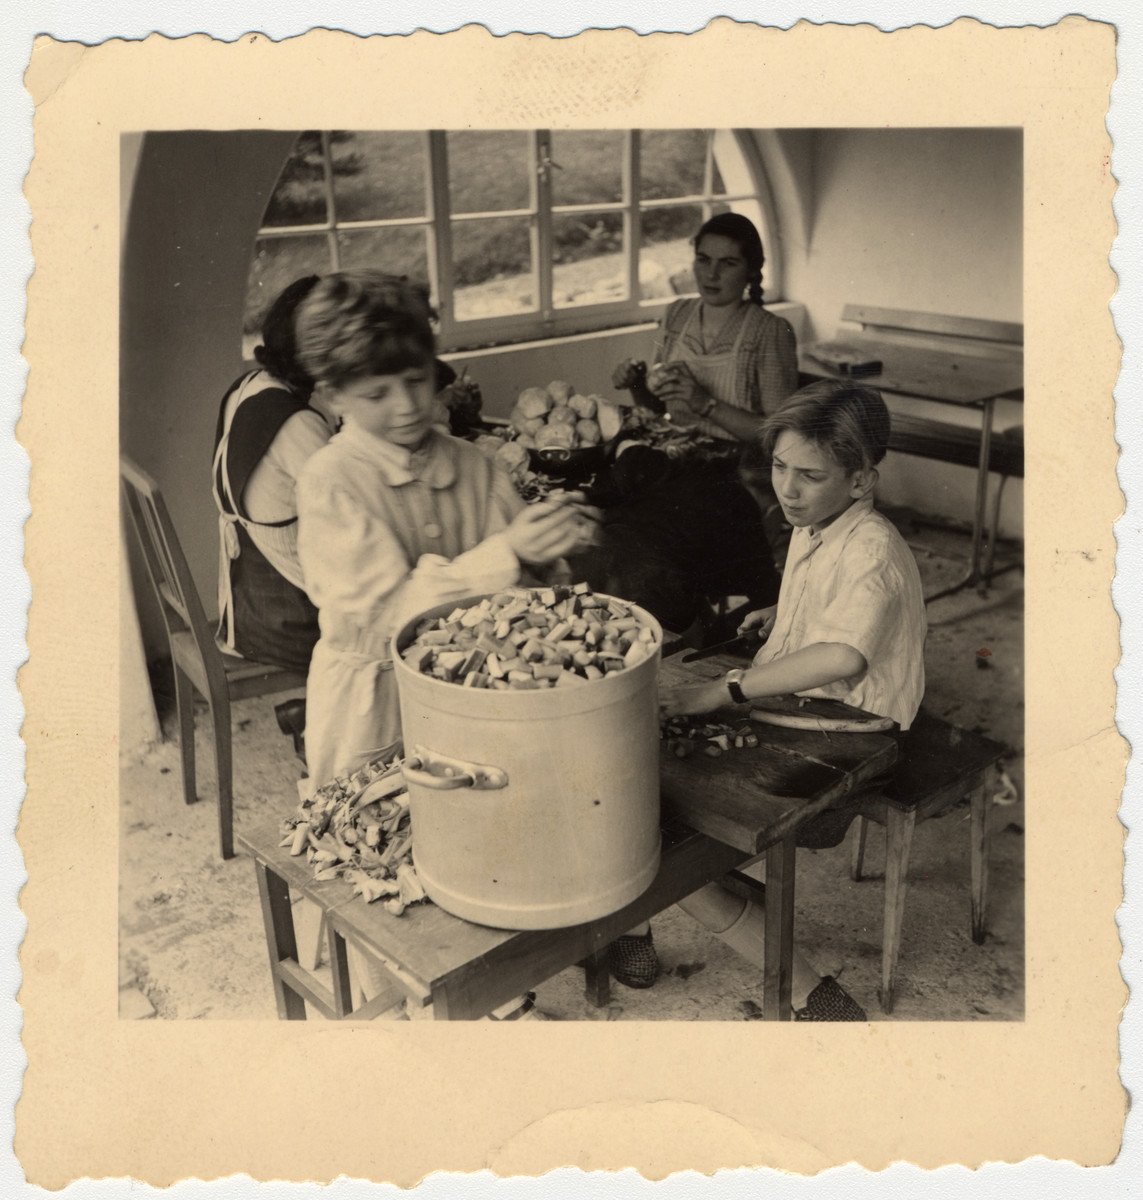 Two young boys cut up vegetables and prepare a meal during their kitchen duty at the École d'Humanité.